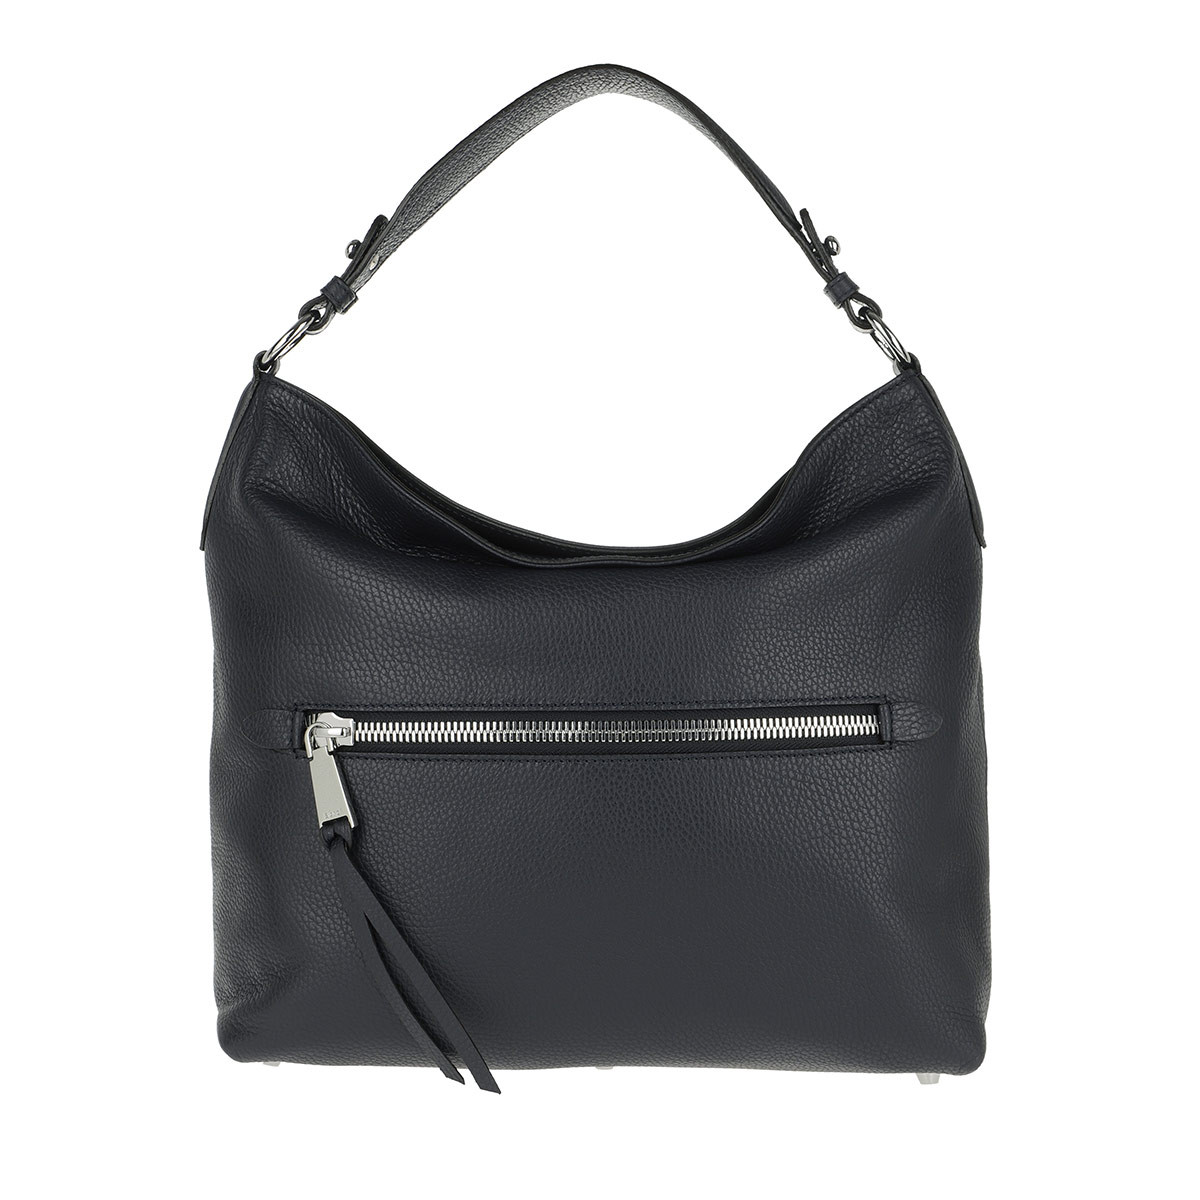 Abro Hobo Bag - Beutel Linna Small Navy - in marine - für Damen